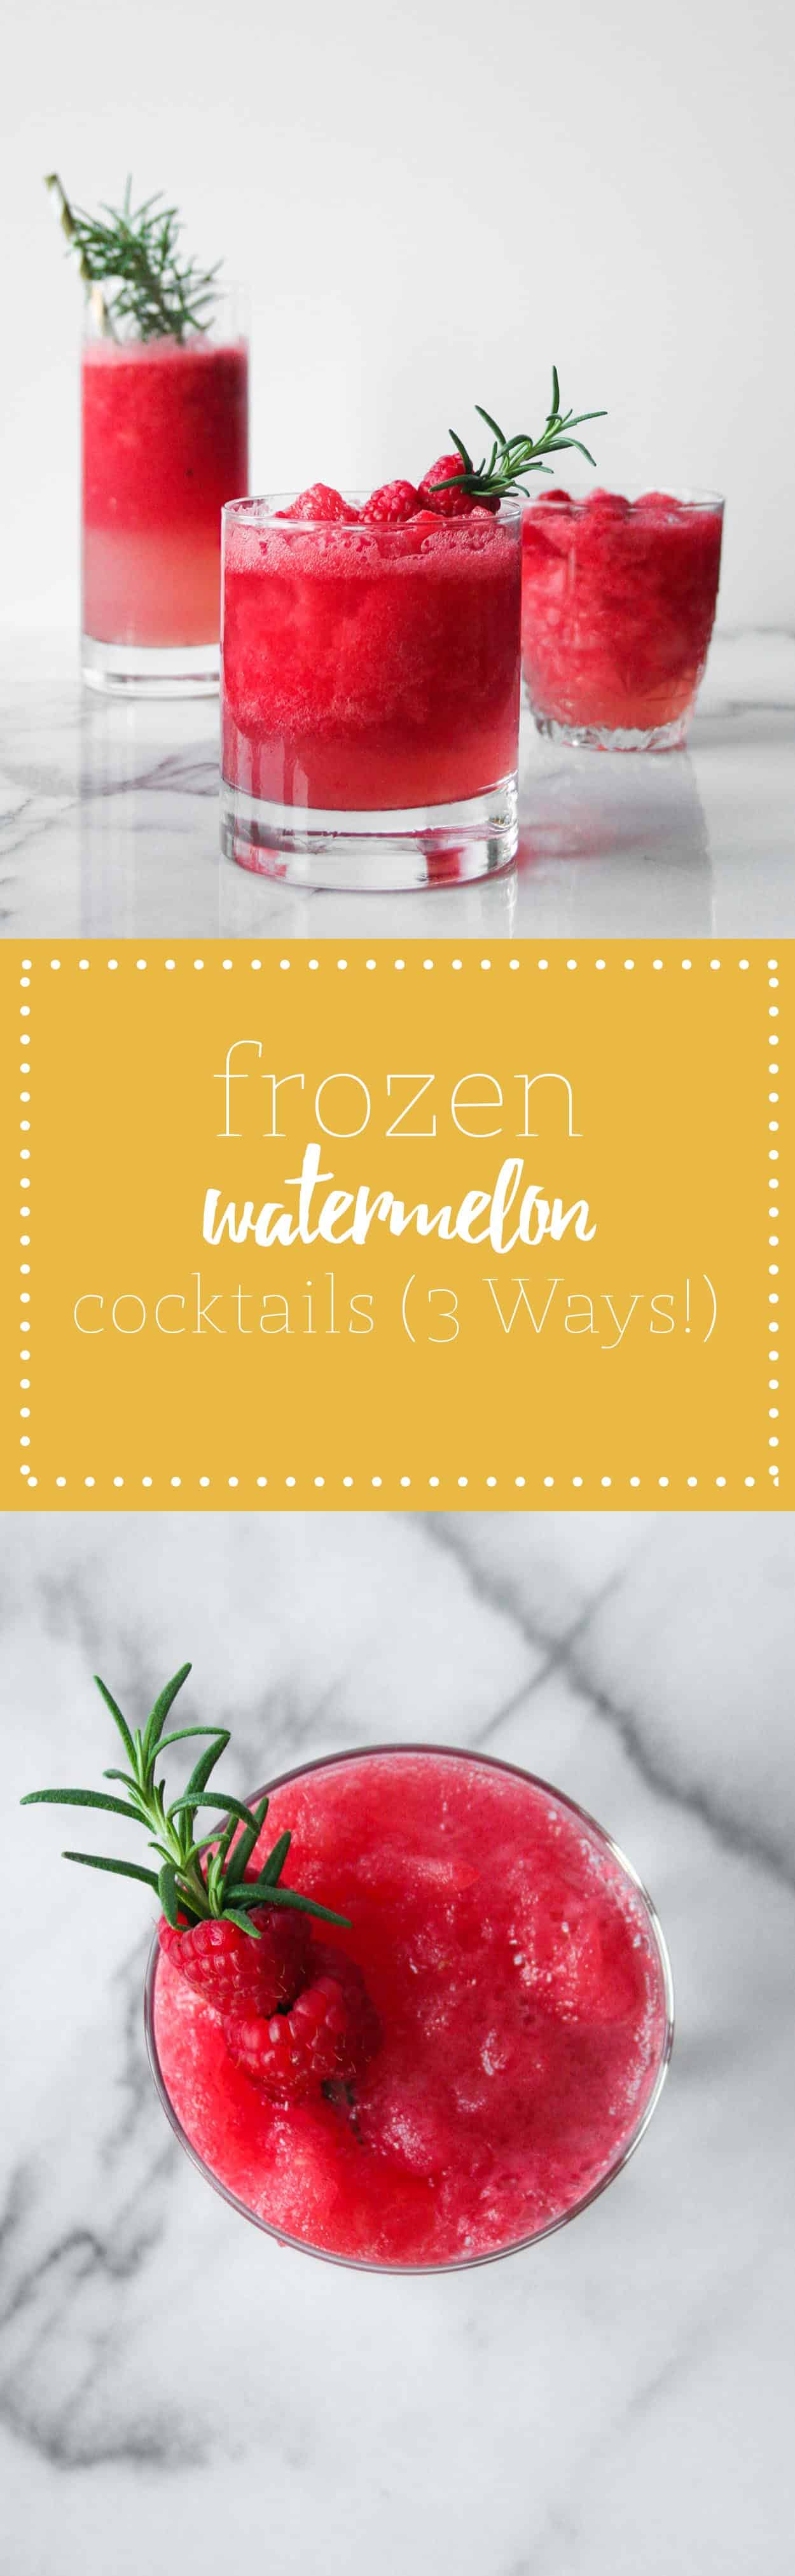 Frozen Watermelon Cocktails (3 Ways!) - Hungry by Nature